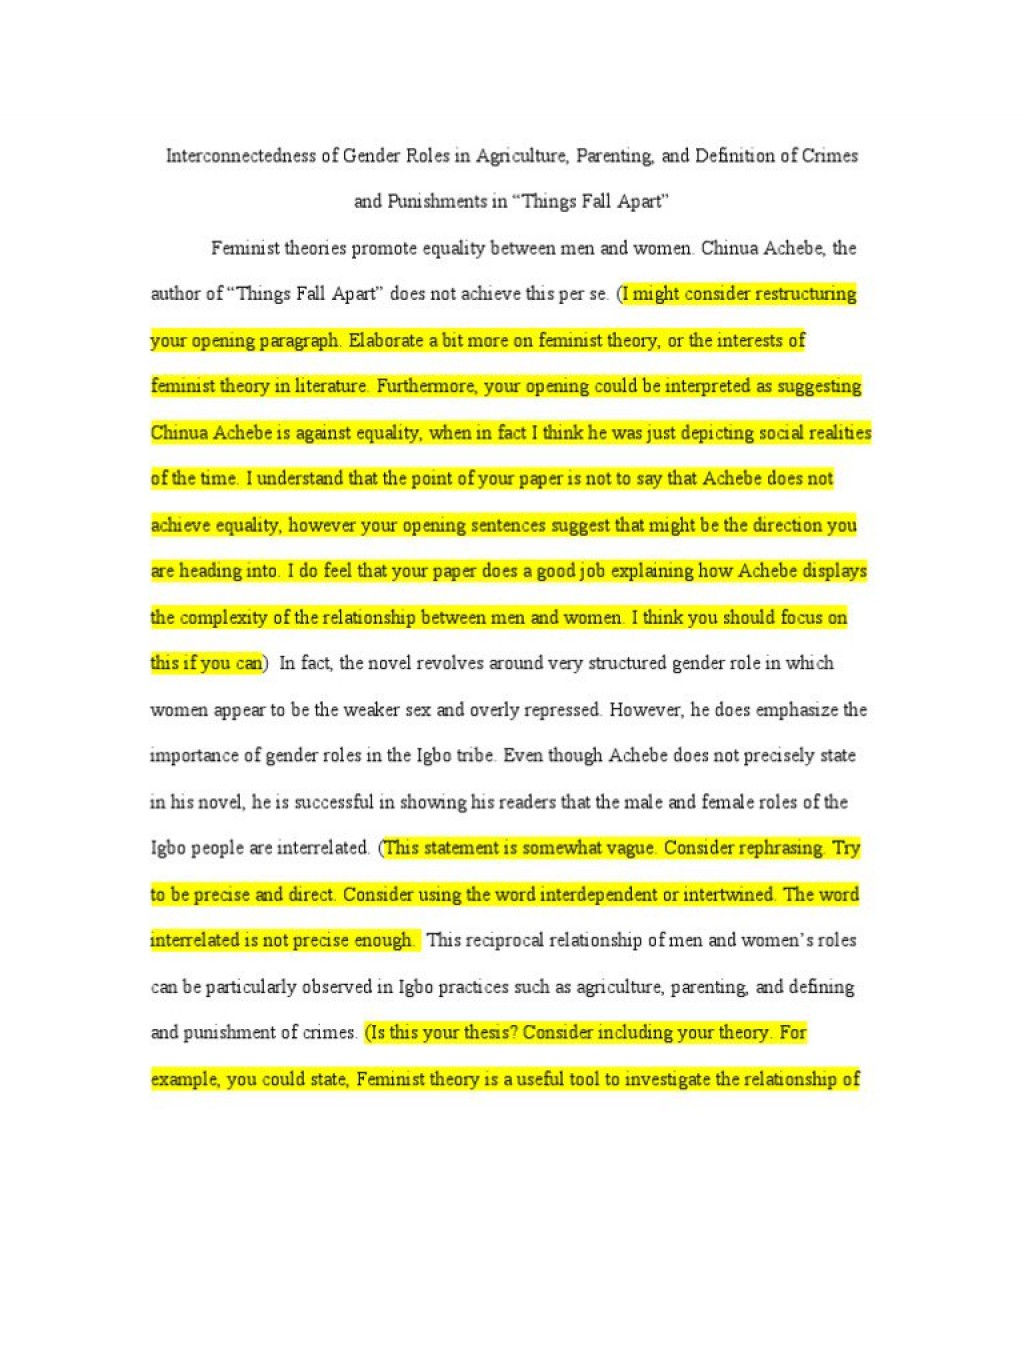 007 Essay Example Gender Equality About Inequality Dracula Essays Custom Argumentative On In The Workplace Top Research Paper Ideas Pdf Simple Words Large